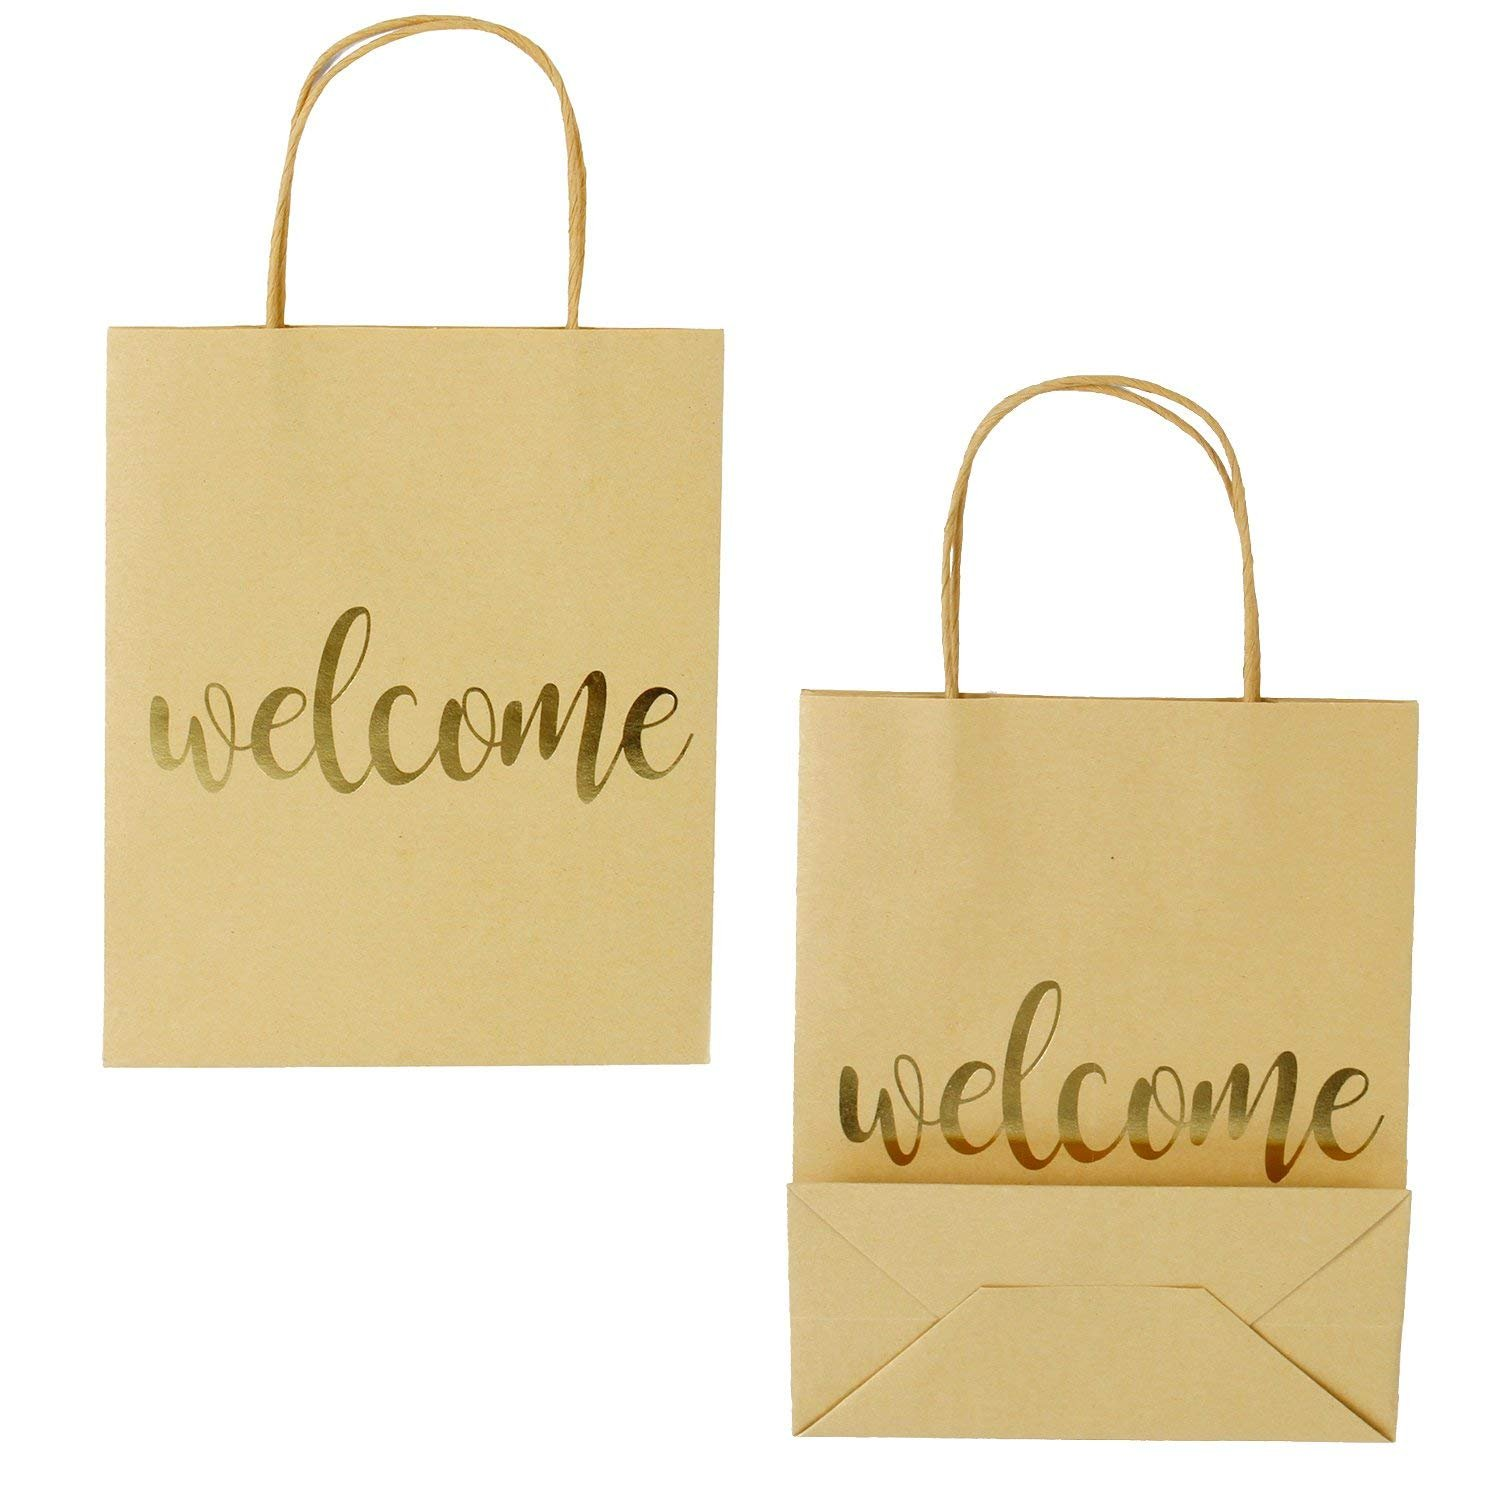 LaRibbon Medium Welcome Gift Bags - Gold Foil Brown Paper Bags with Handles for Wedding, Birthday, Baby Shower, Party Favors - 12 Pack - 8'' x 4'' x 10'' by LaRibbons (Image #1)